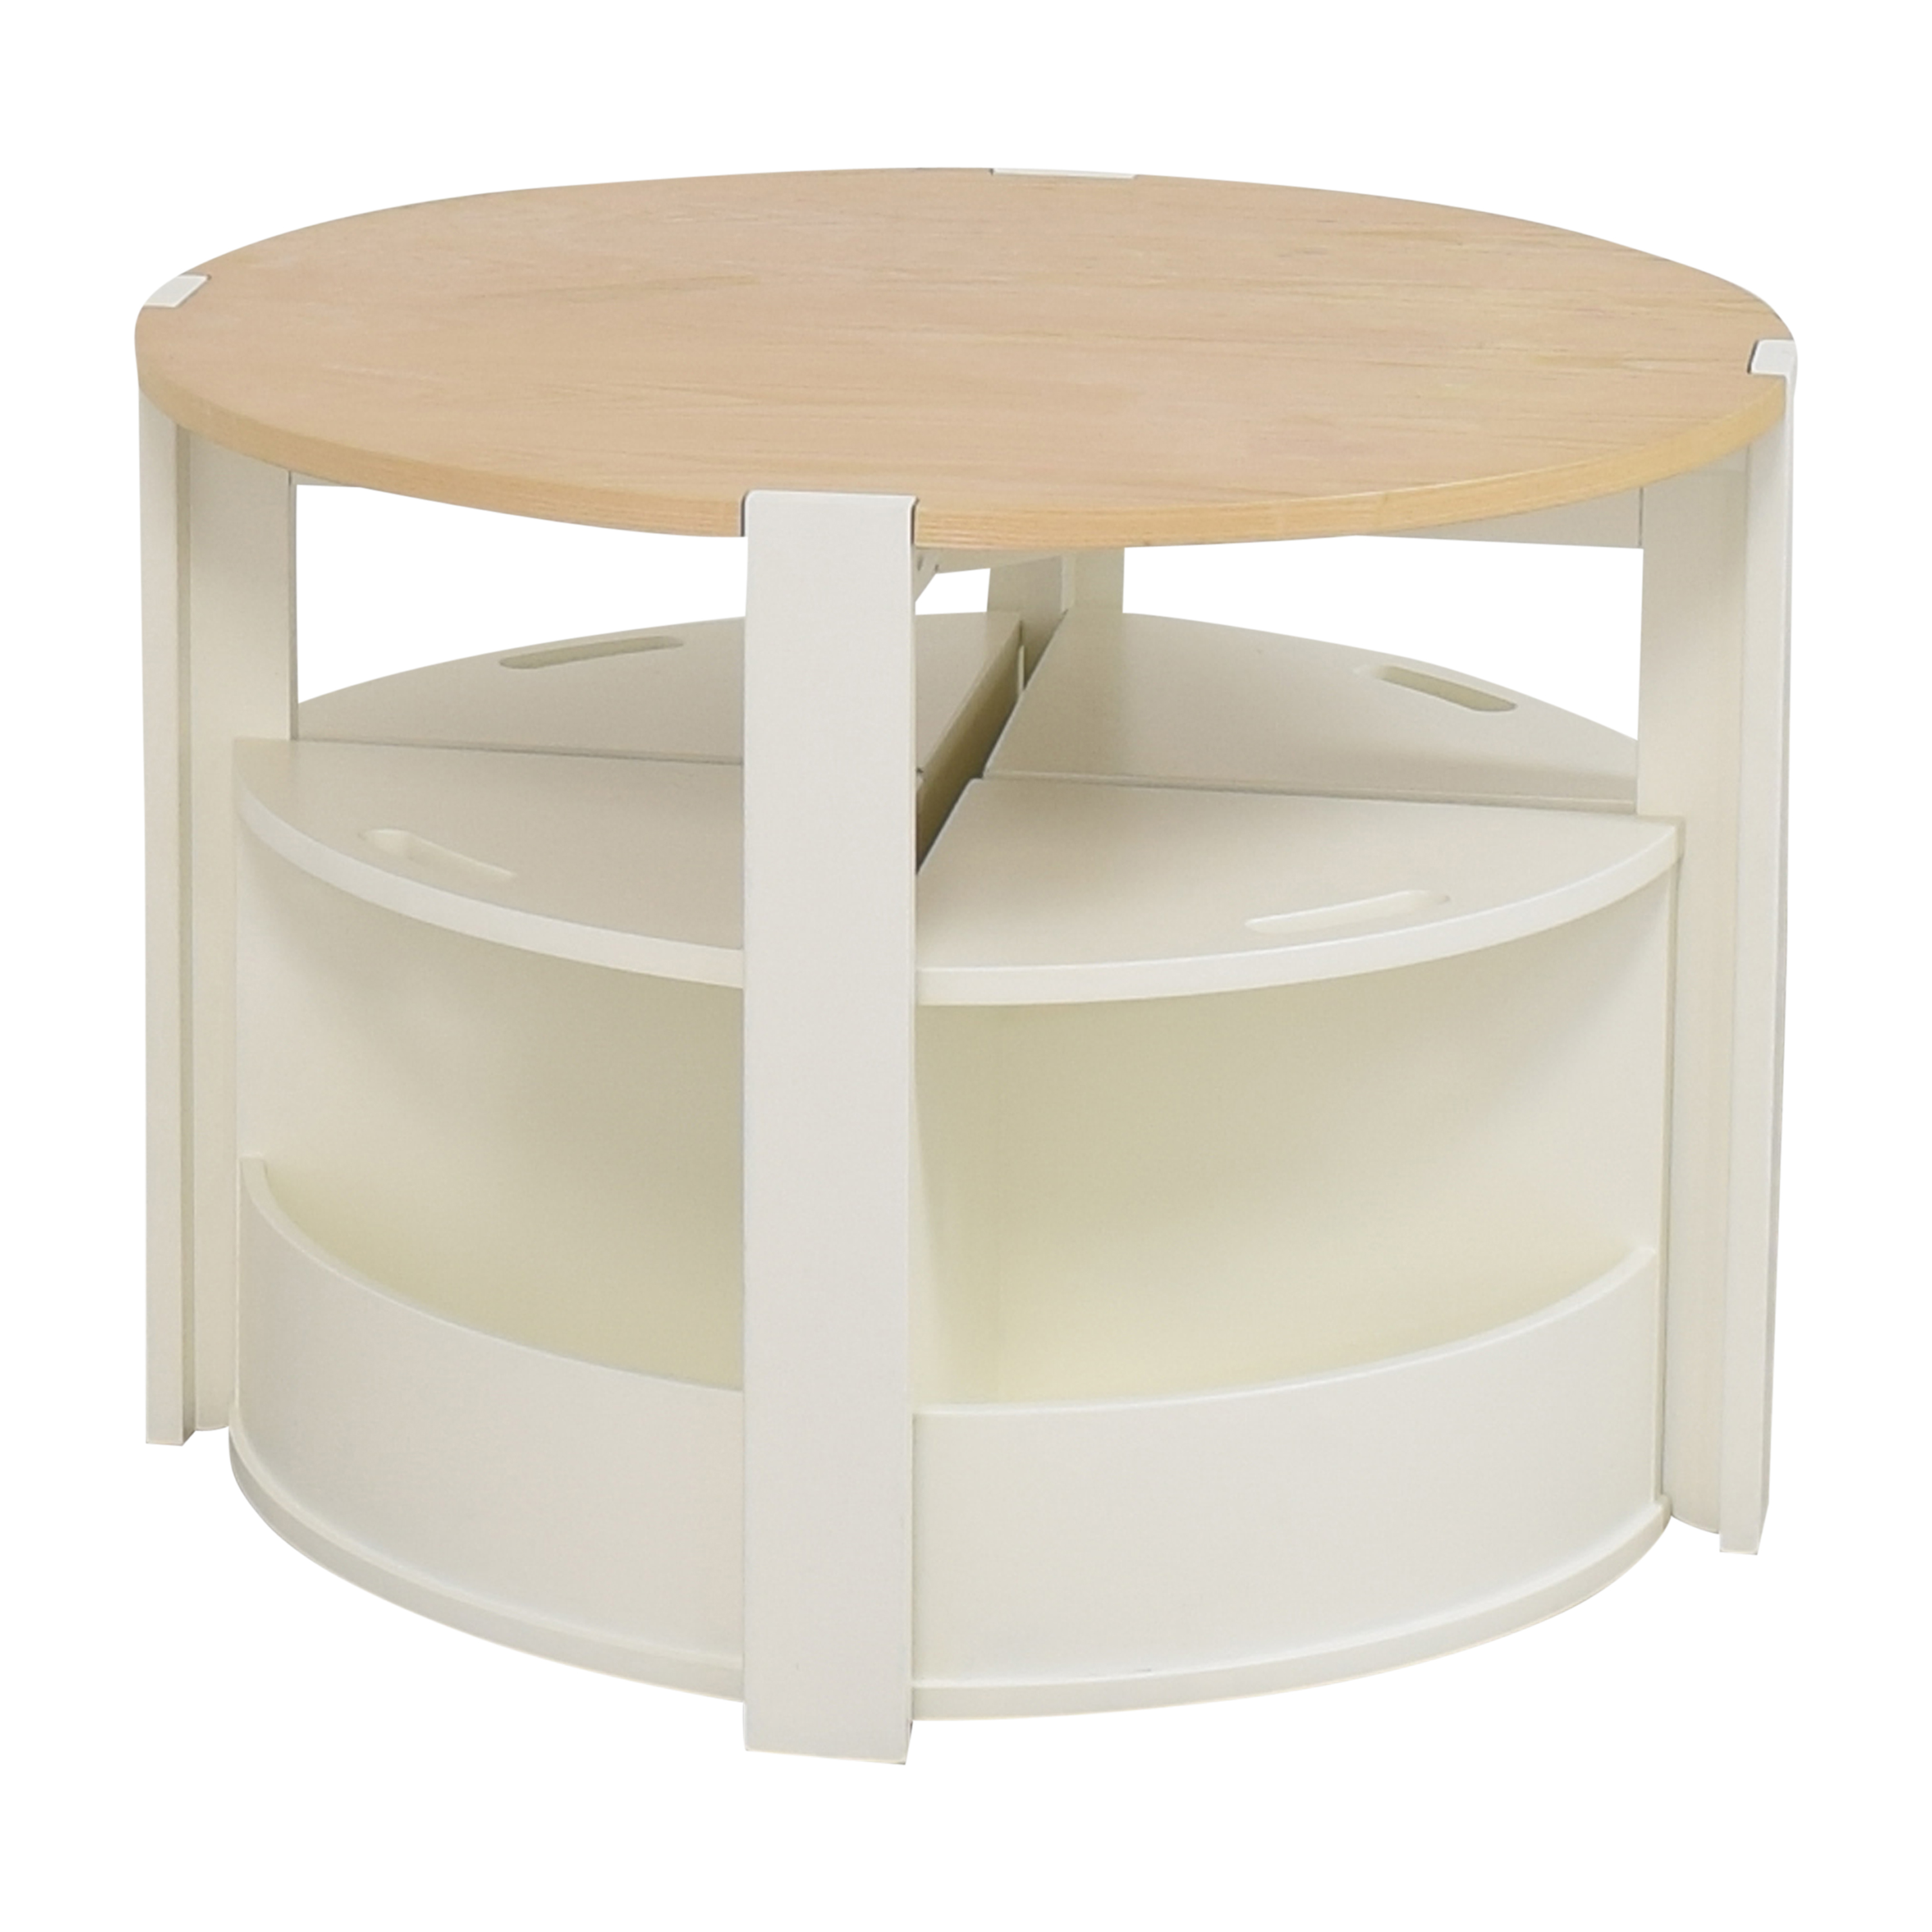 Crate & Barrel Nesting Play Table and Chairs Crate & Barrel